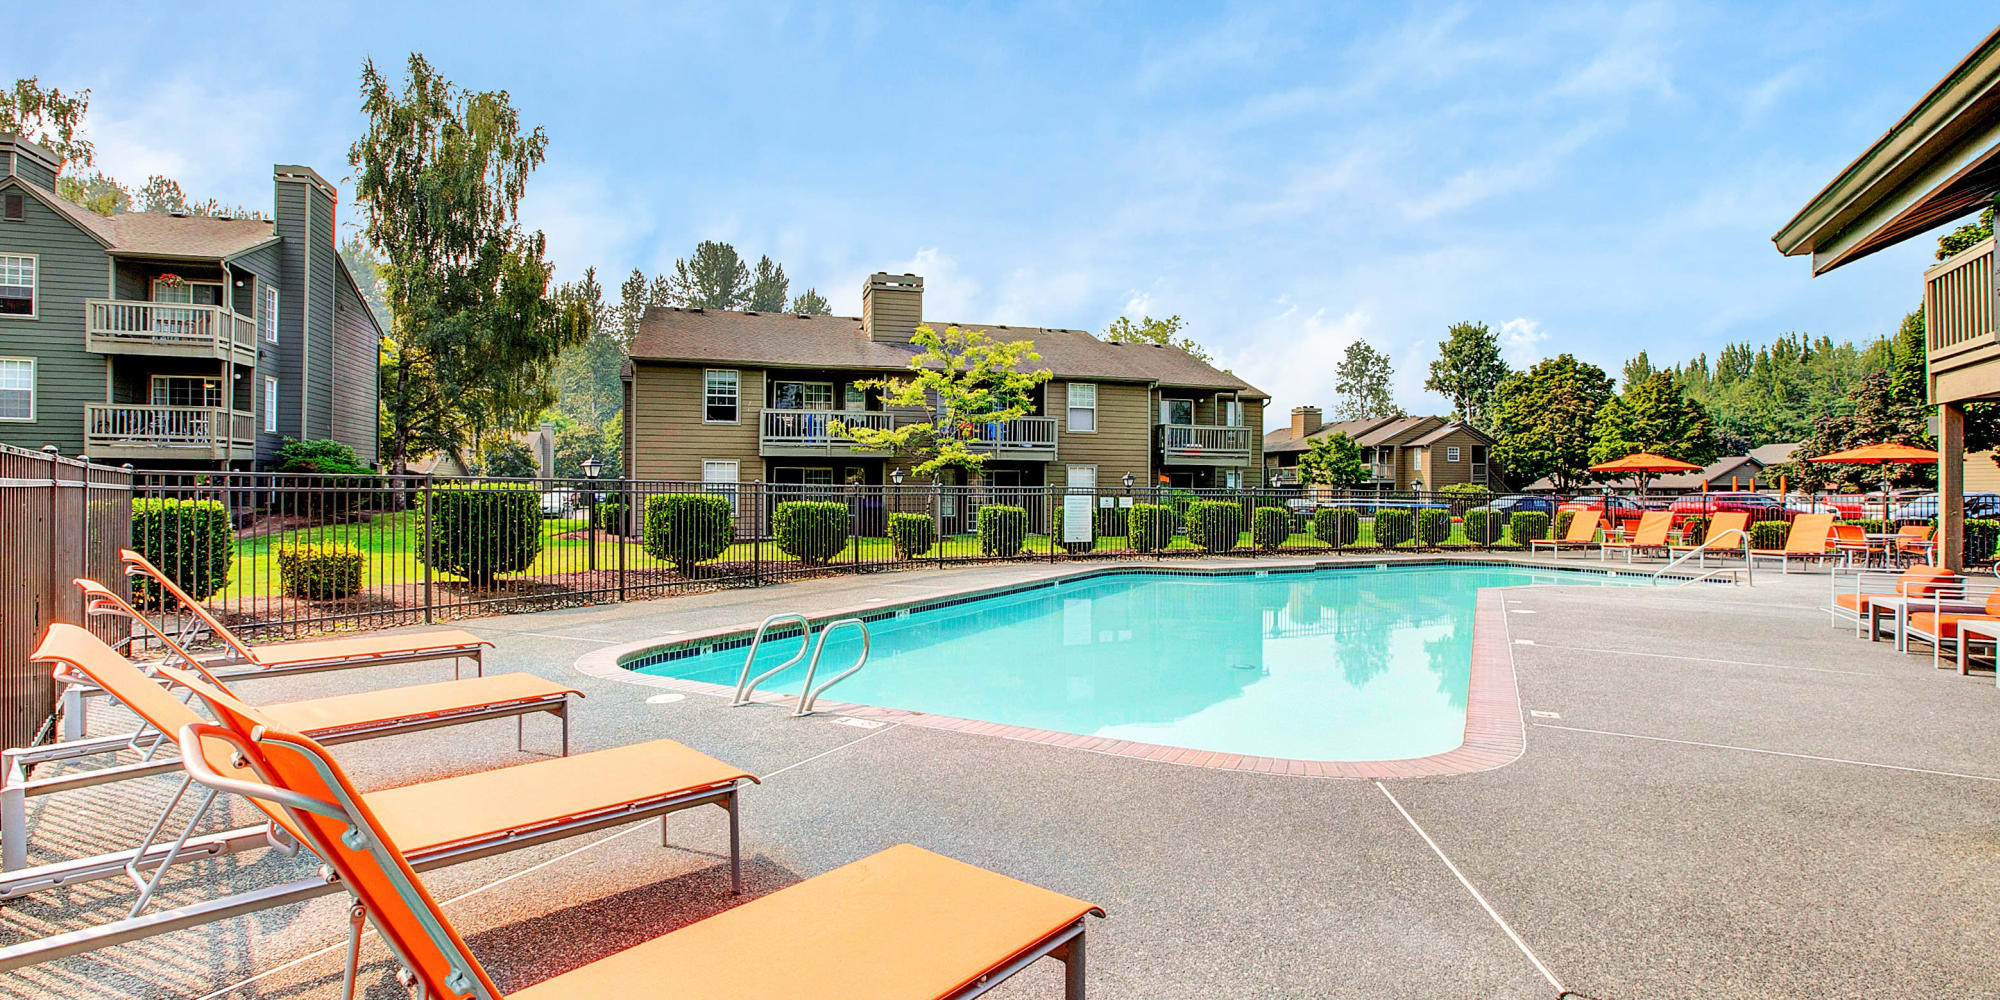 Beautiful pool area with lounge chairs at Waters Edge Apartments in Kent, WA